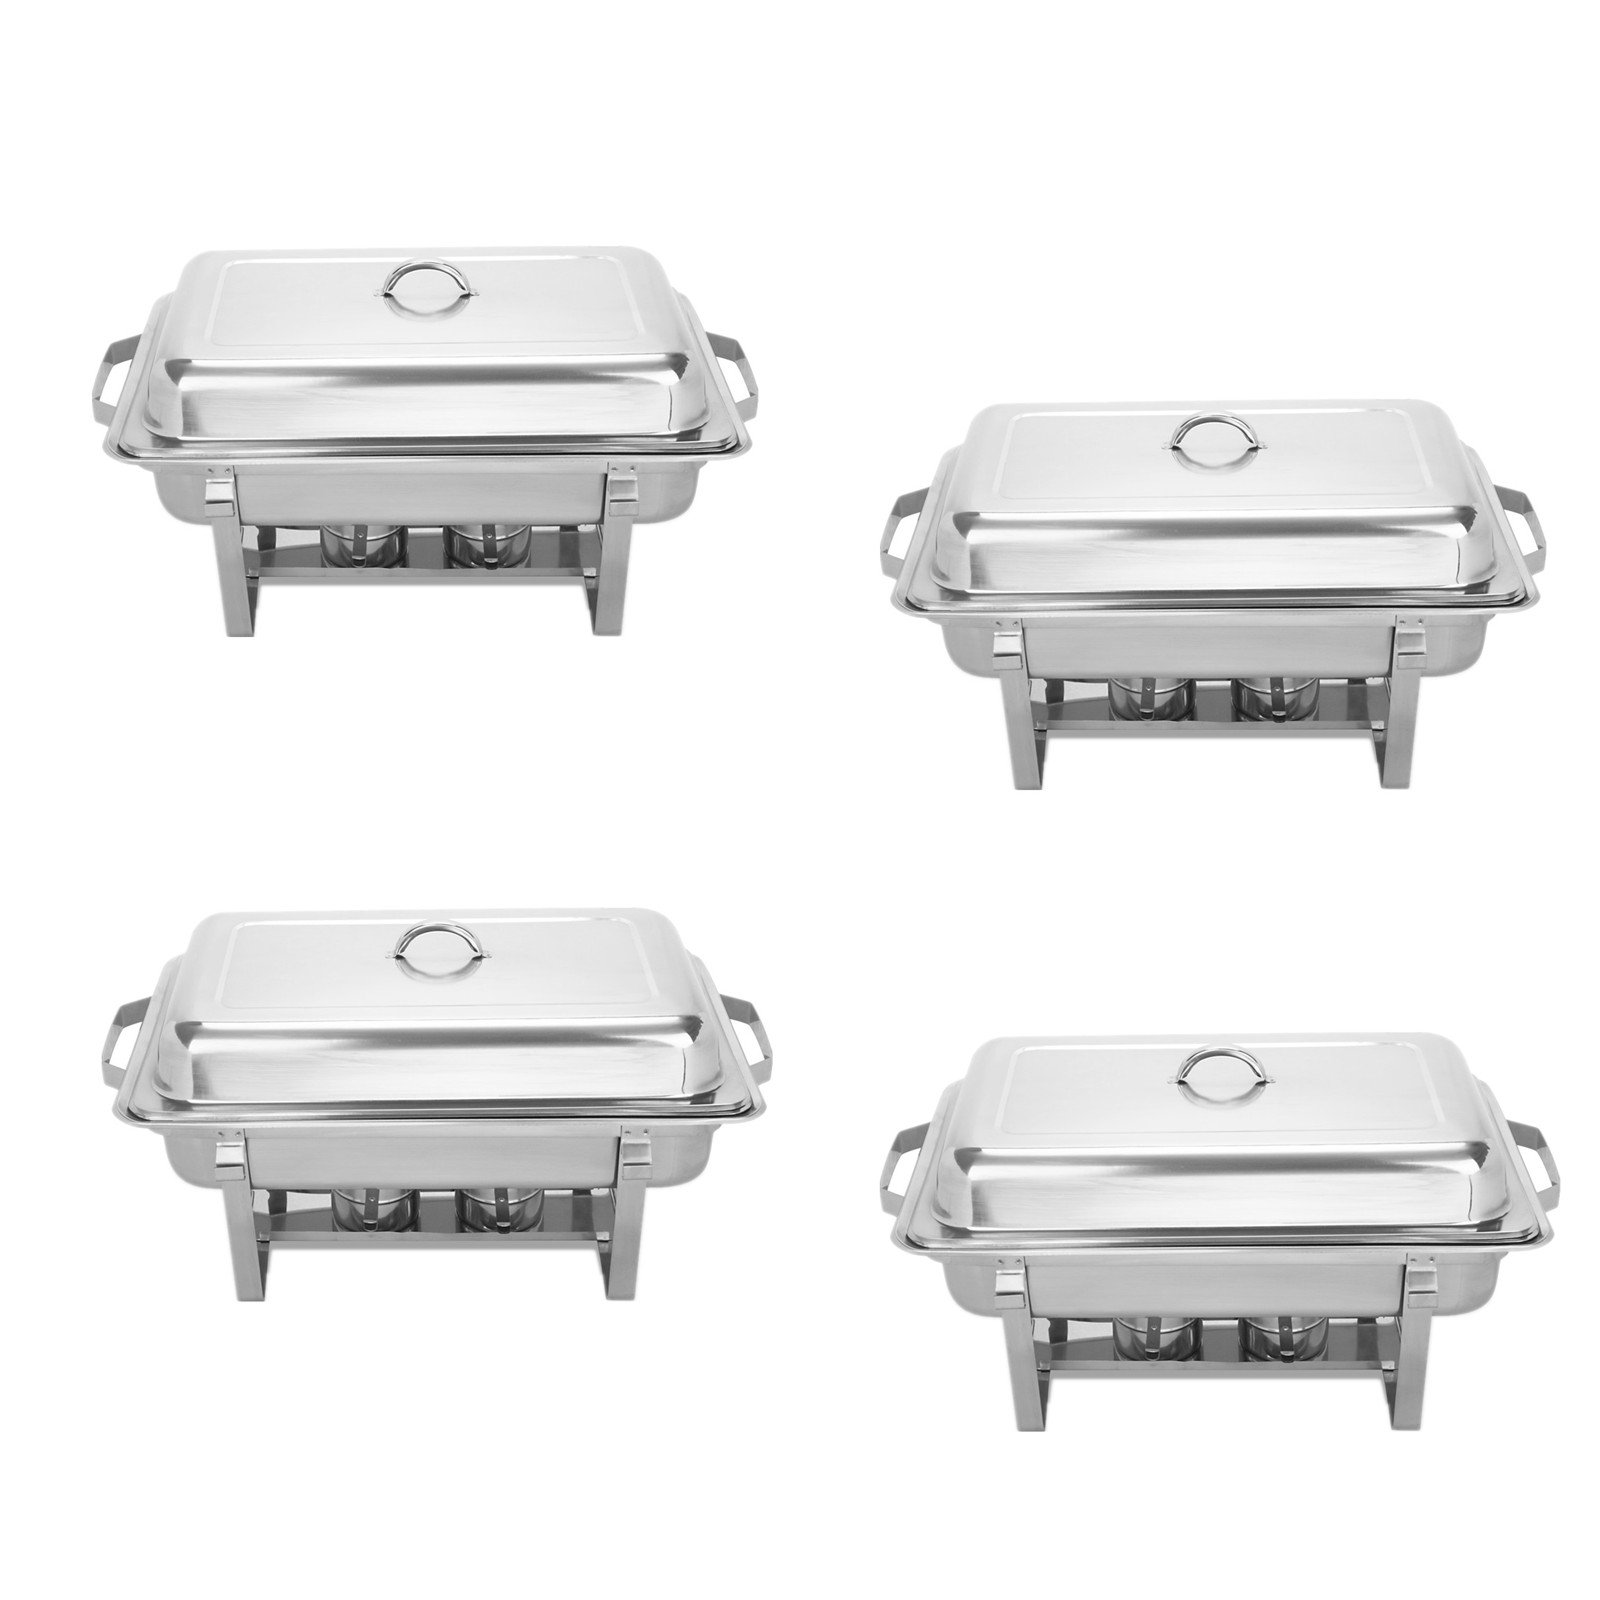 BestEquip Chafing Dish Set 4 Pack 8 Quart Chafer Dish Set Full Size Stainless Steel Chafer with Foldable Frame (pack of 4)